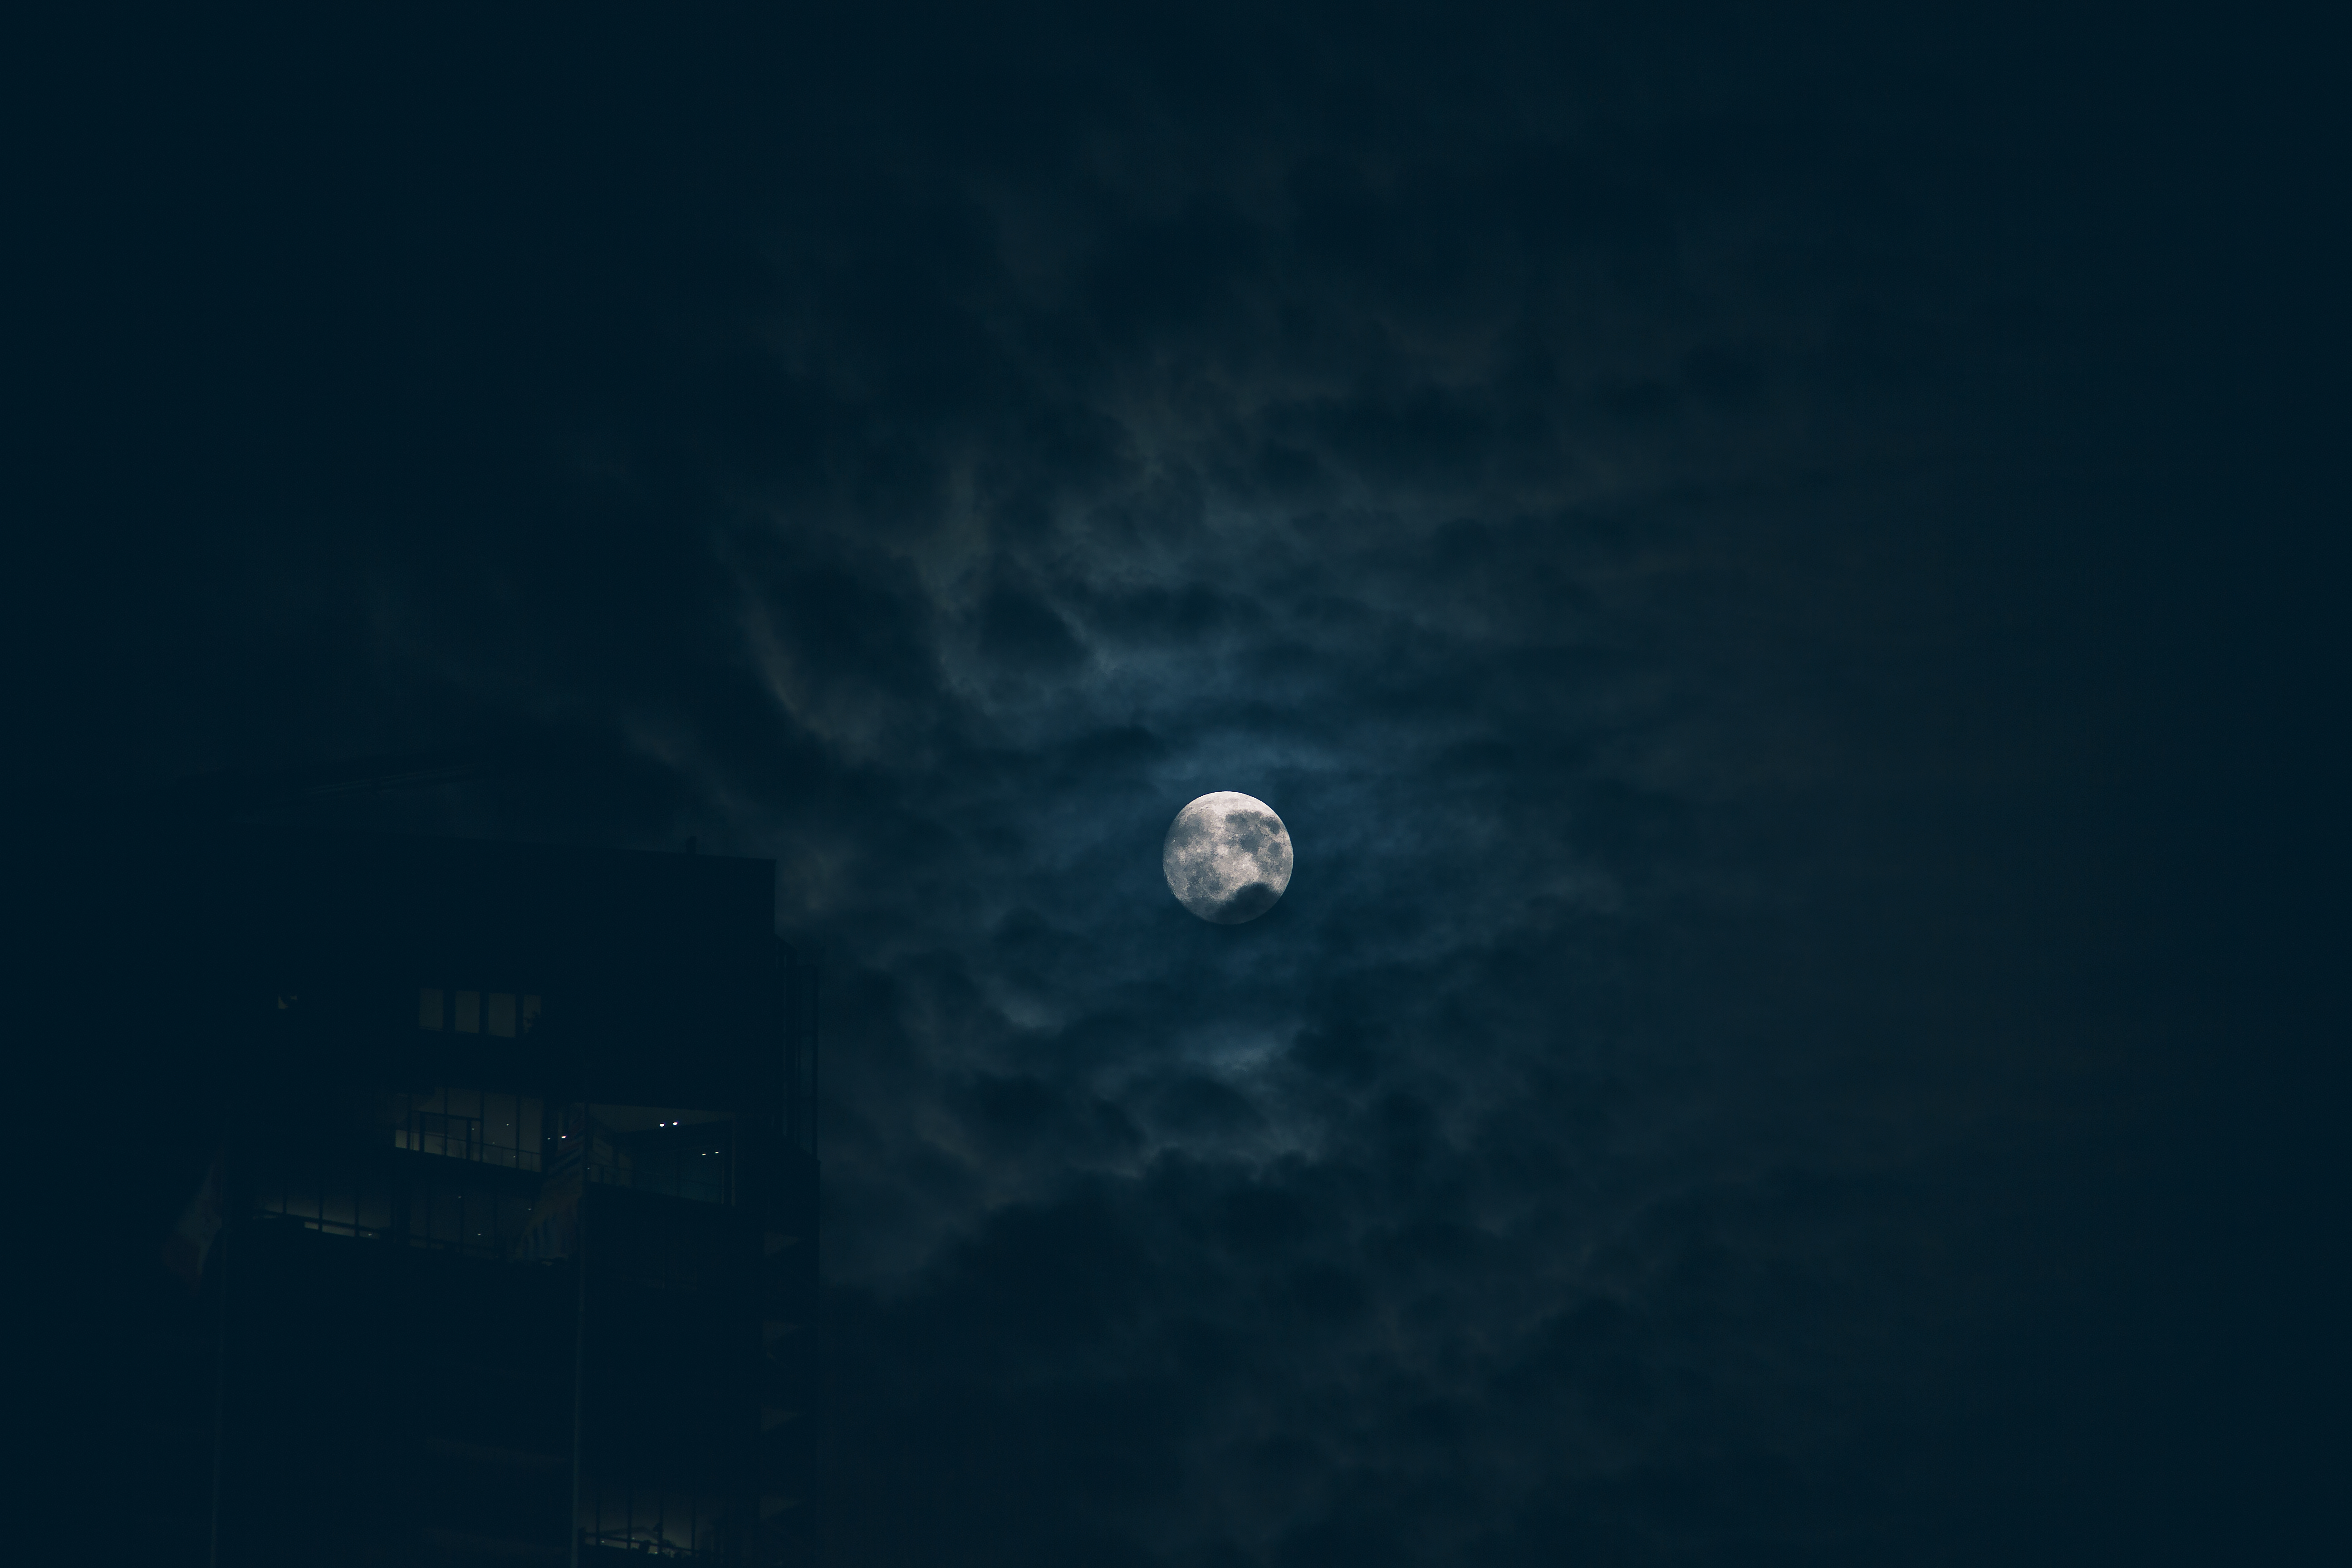 Moon behind clouds photo